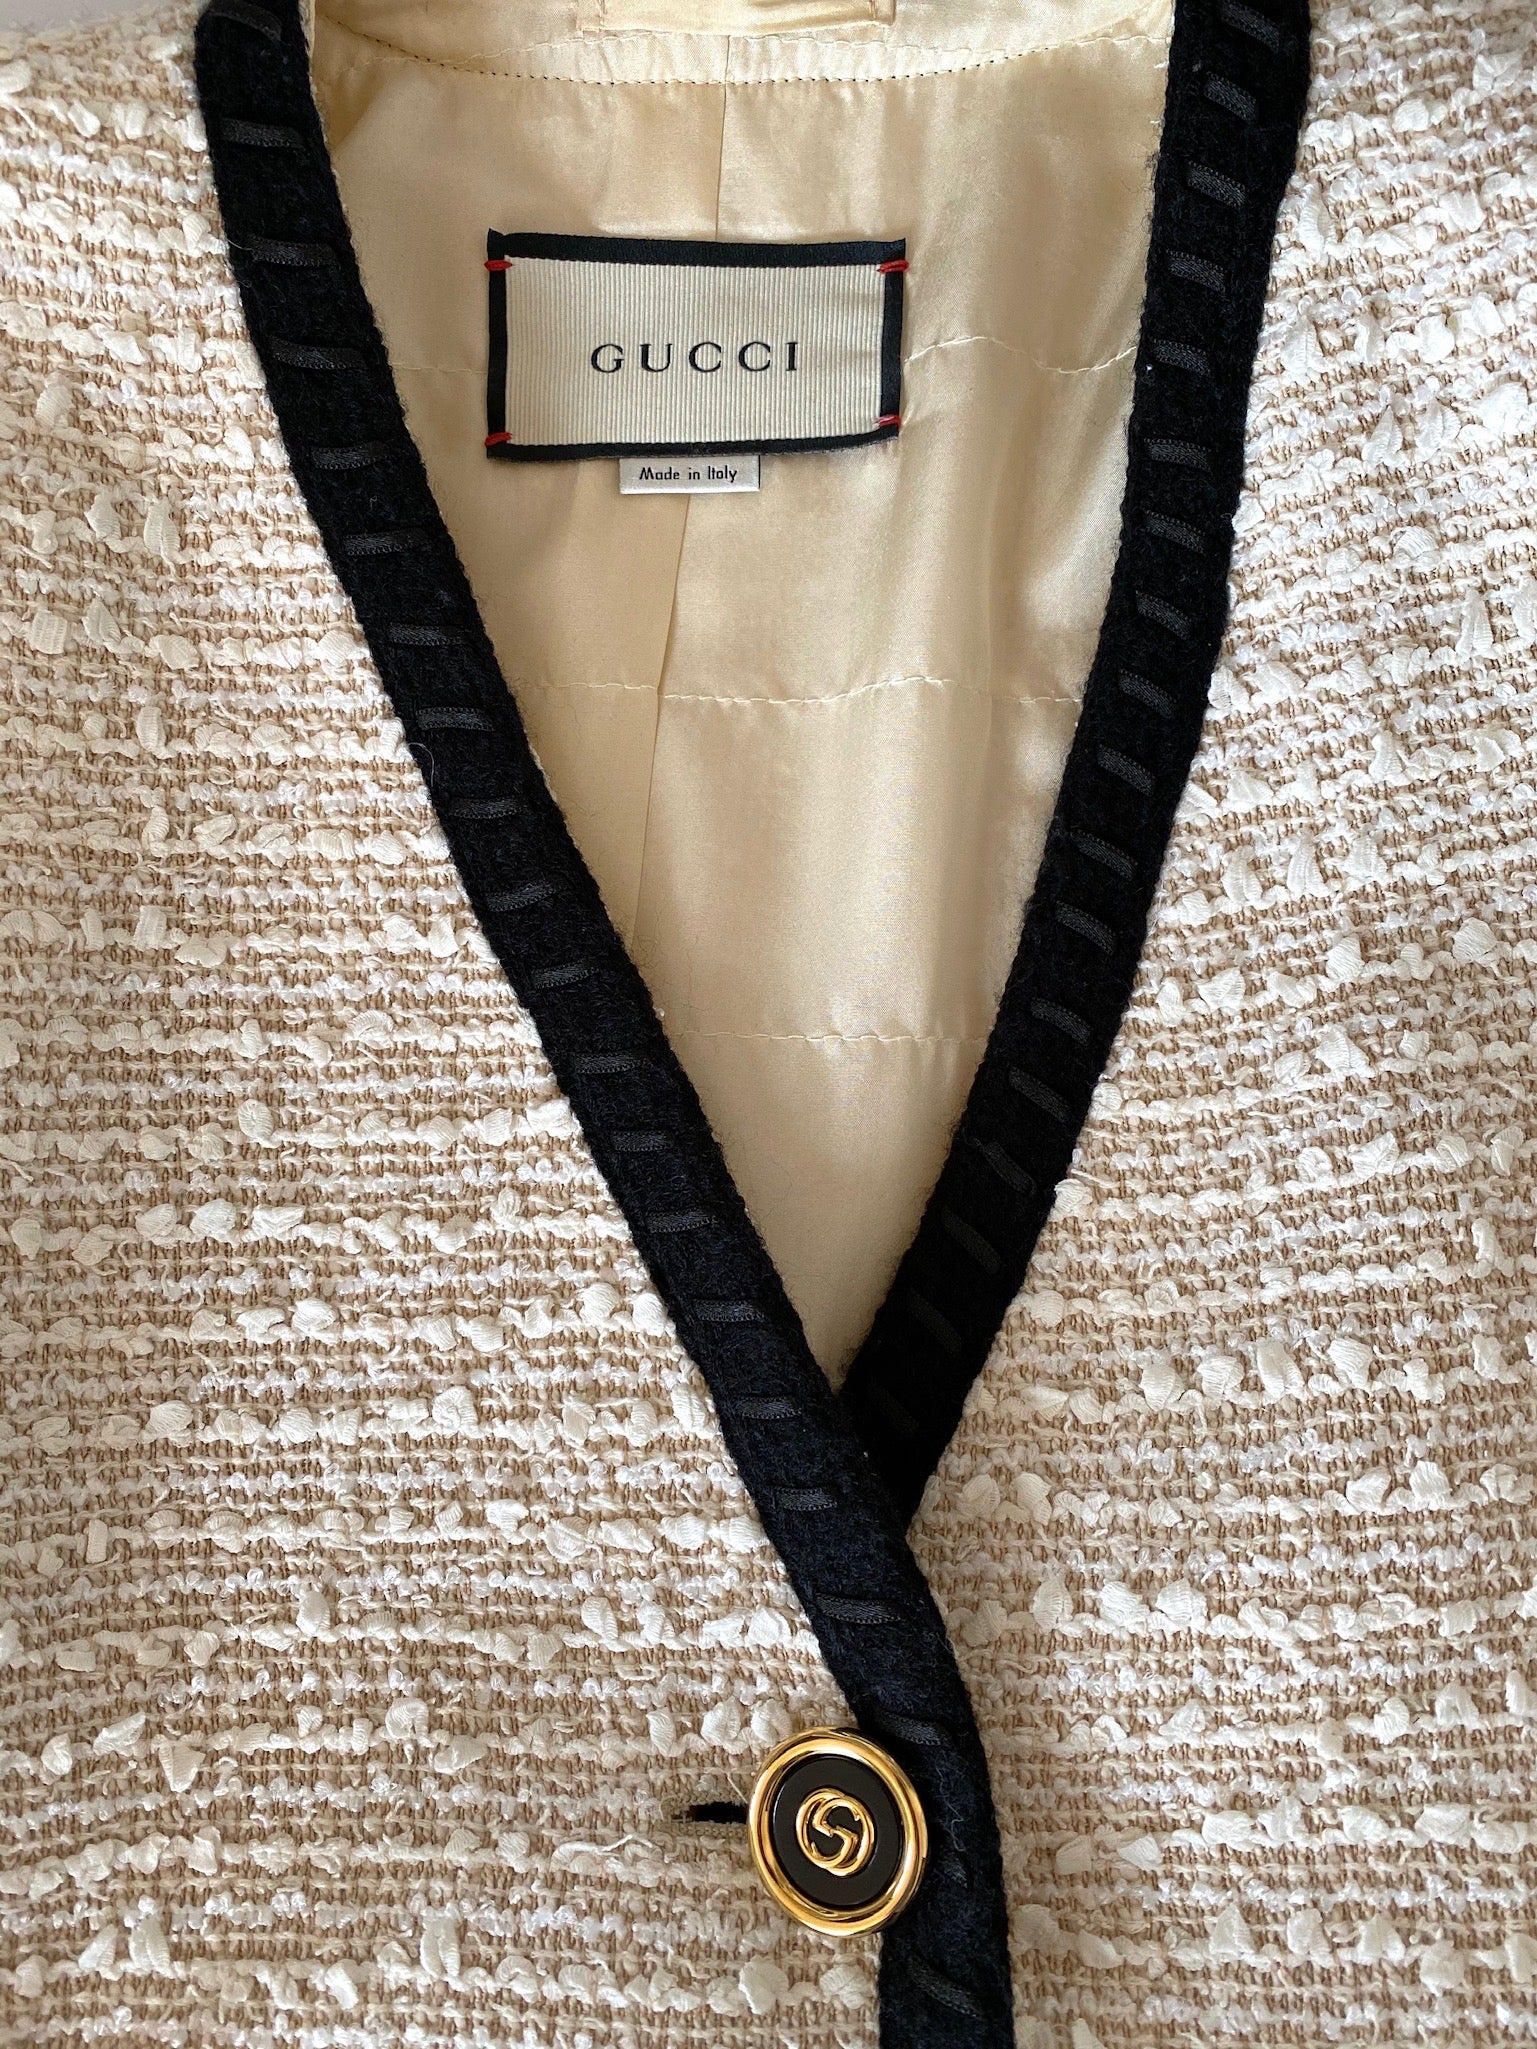 Gucci Ivory Tweed Jacket with Black Trim and Logo Buttons